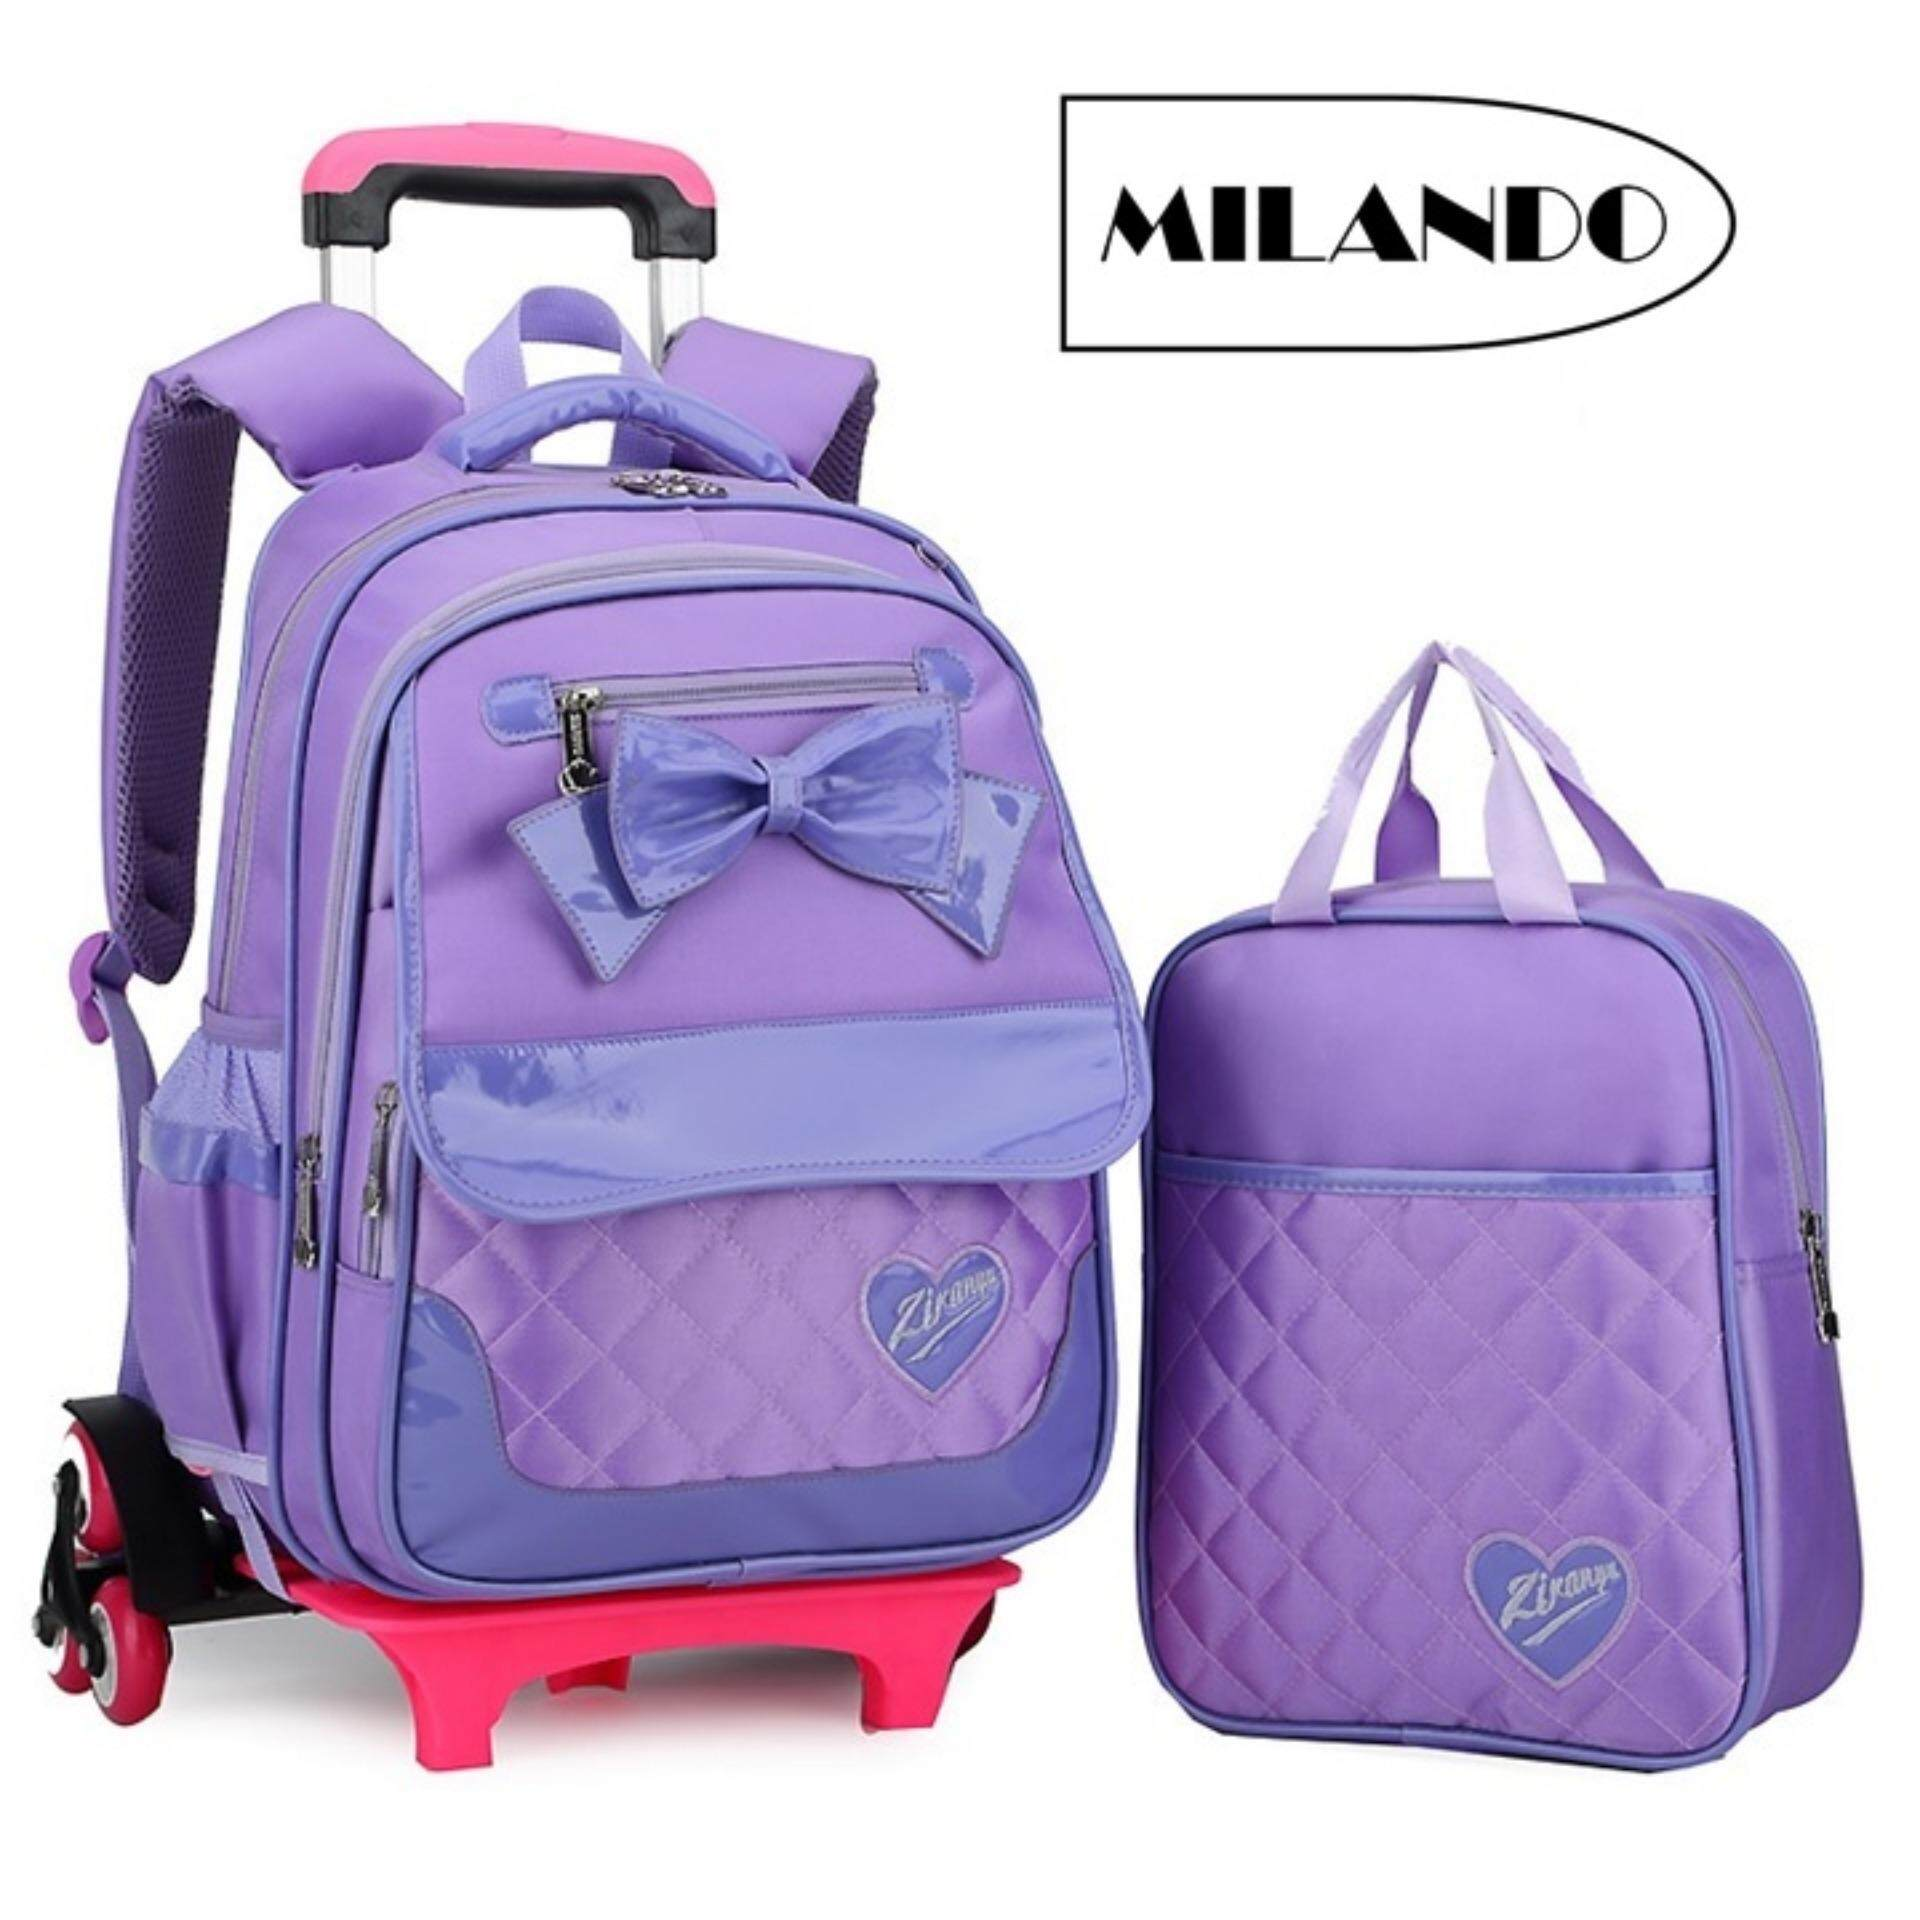 (2 Pieces) Milando 6-Wheel Kid Girl Ribbon Quilt School Bag Backpack Trolley Bag Free Tuition Bag By Milando.